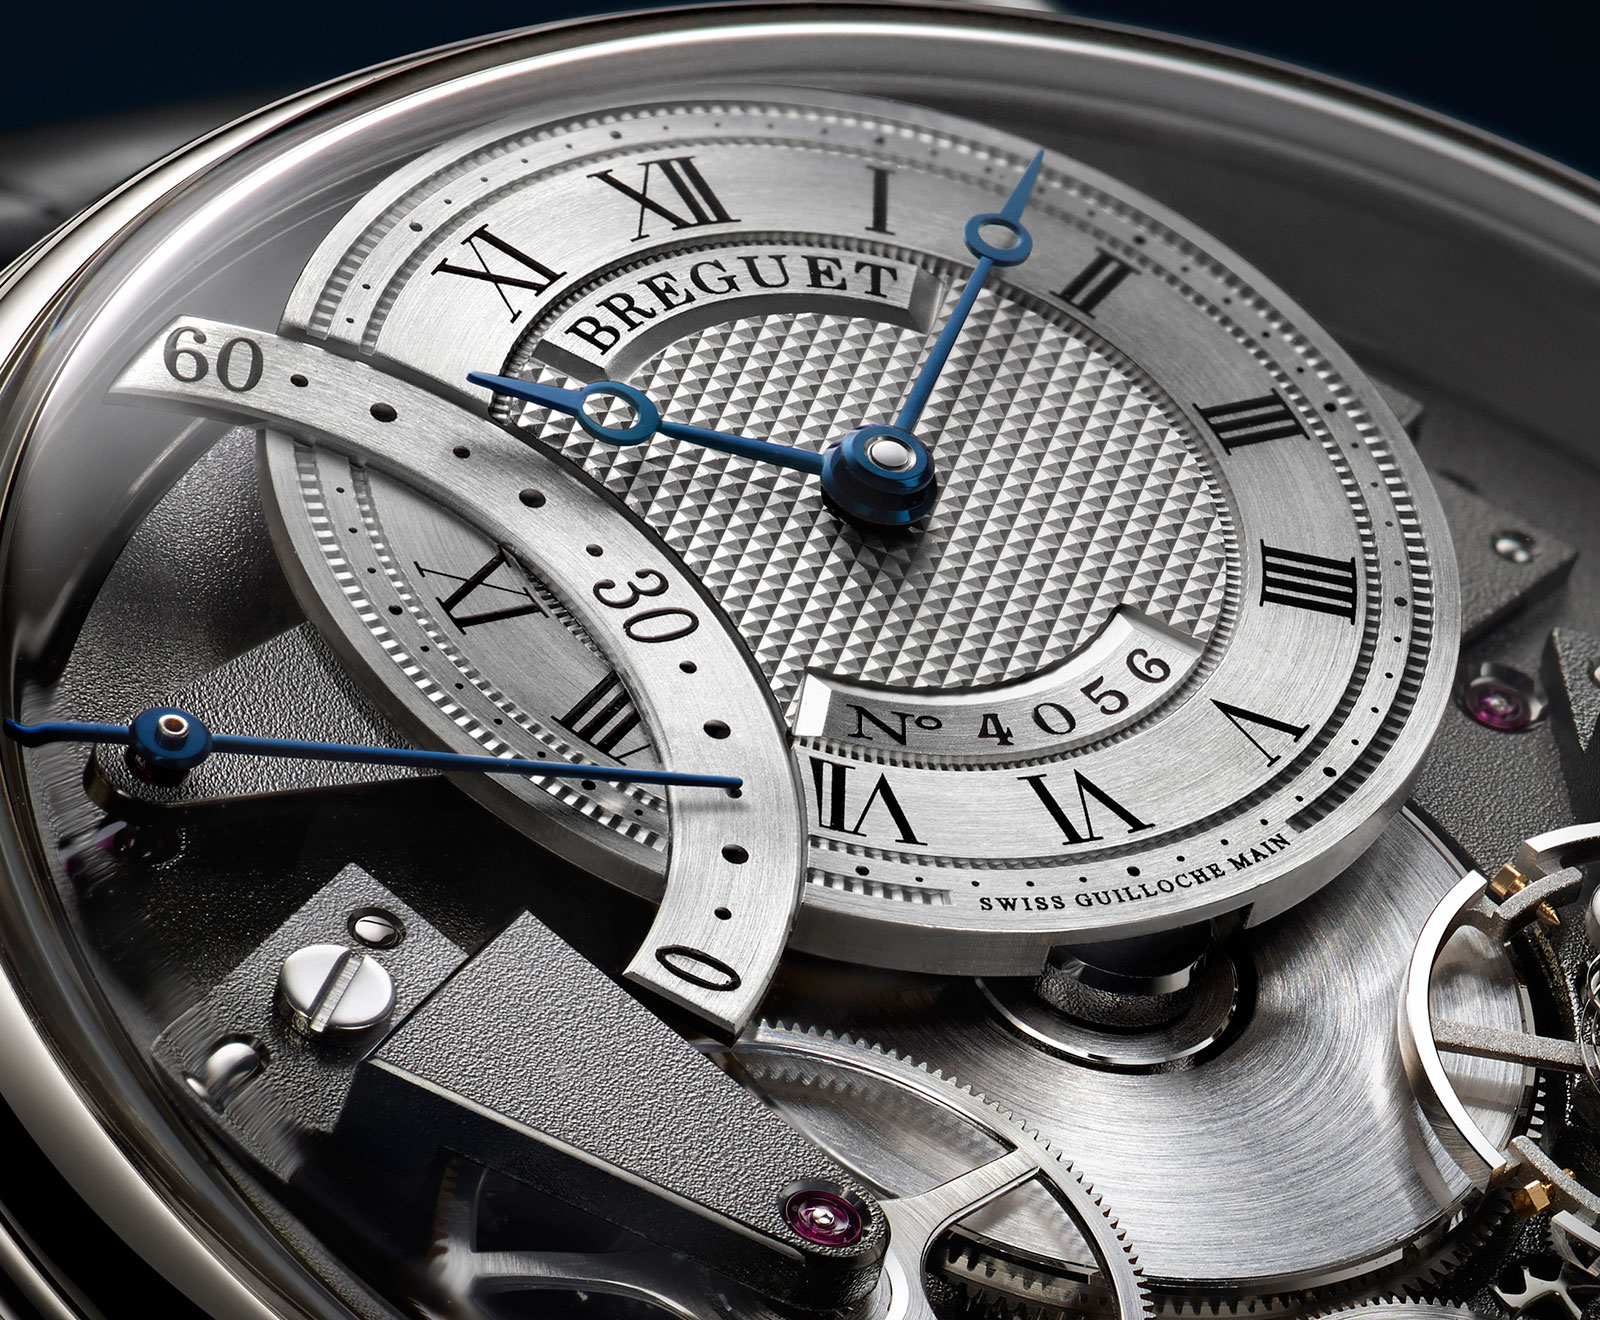 Breguet Tradition Automatique Seconde Retrograde 7097 Watch Introduction